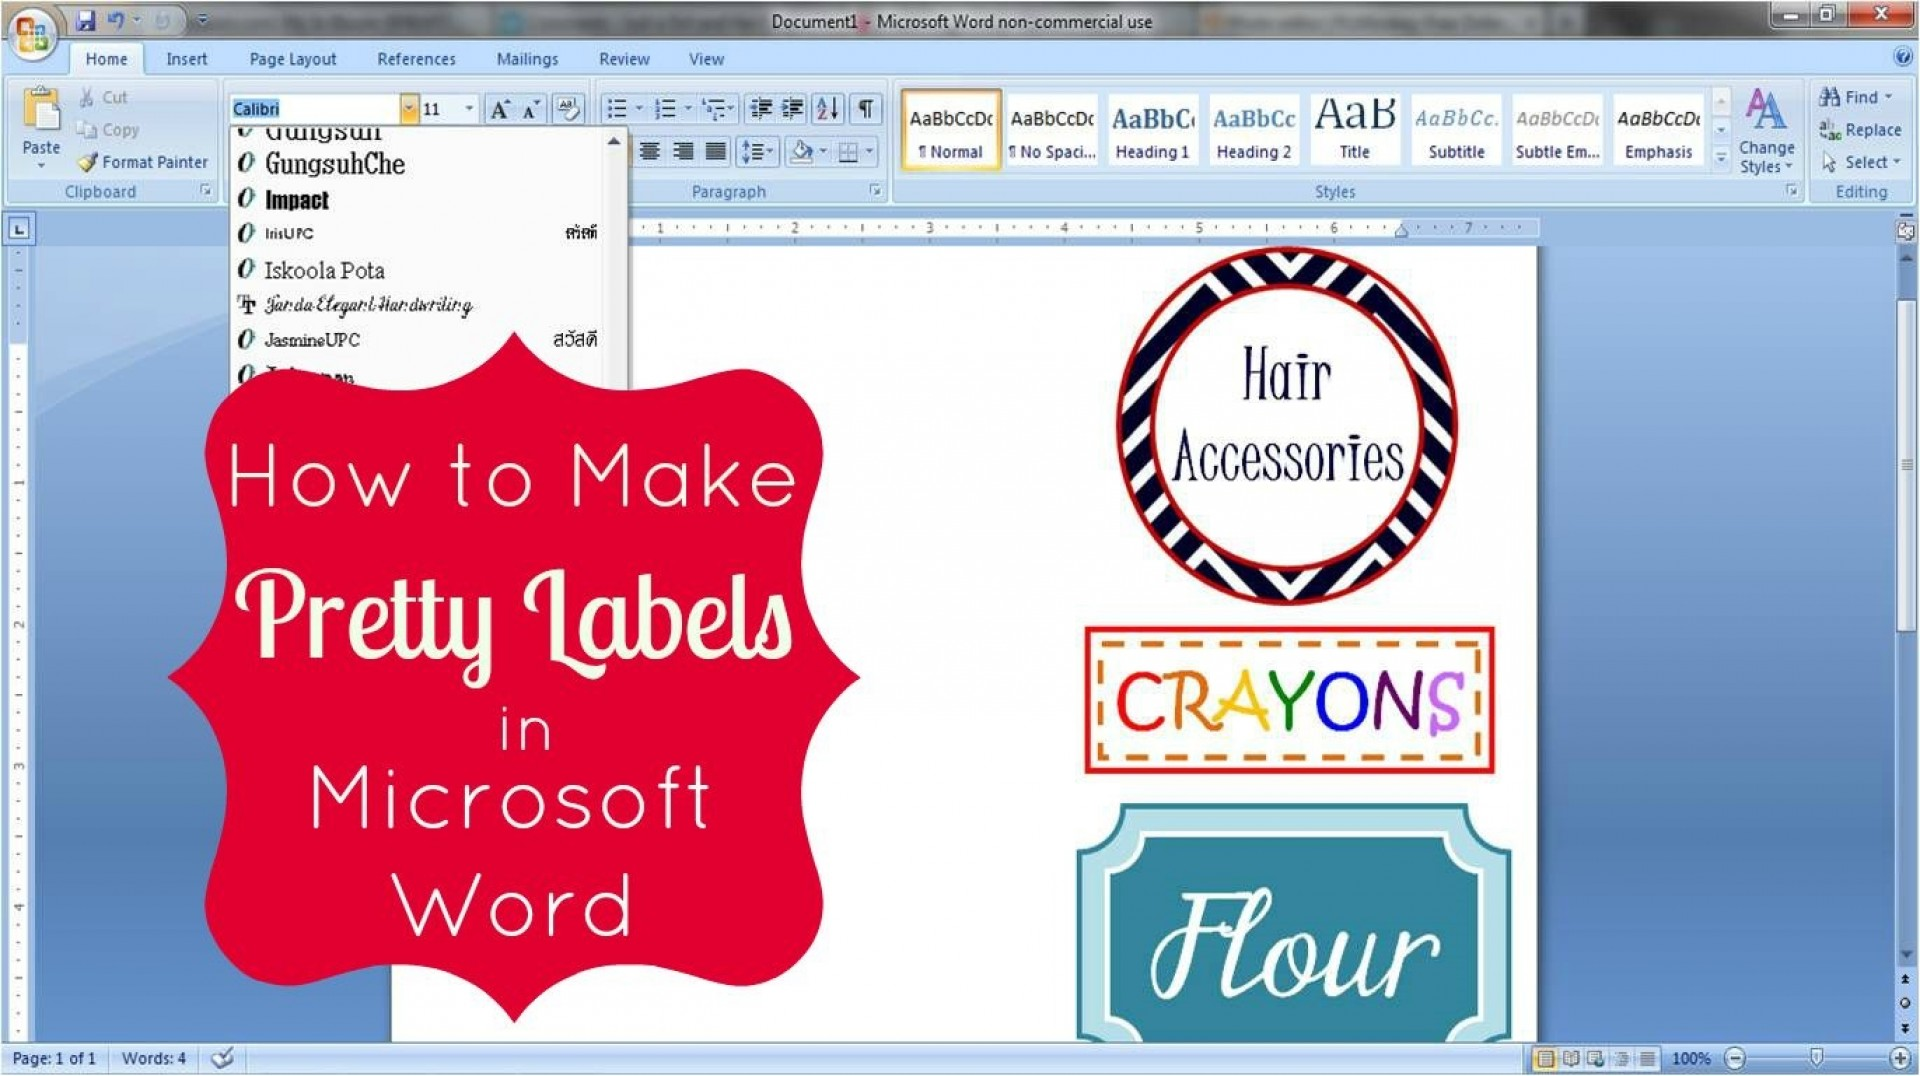 003 Stunning Microsoft Word Label Template Highest Clarity  Templates 24 Per Sheet Addres 21 Free Download1920